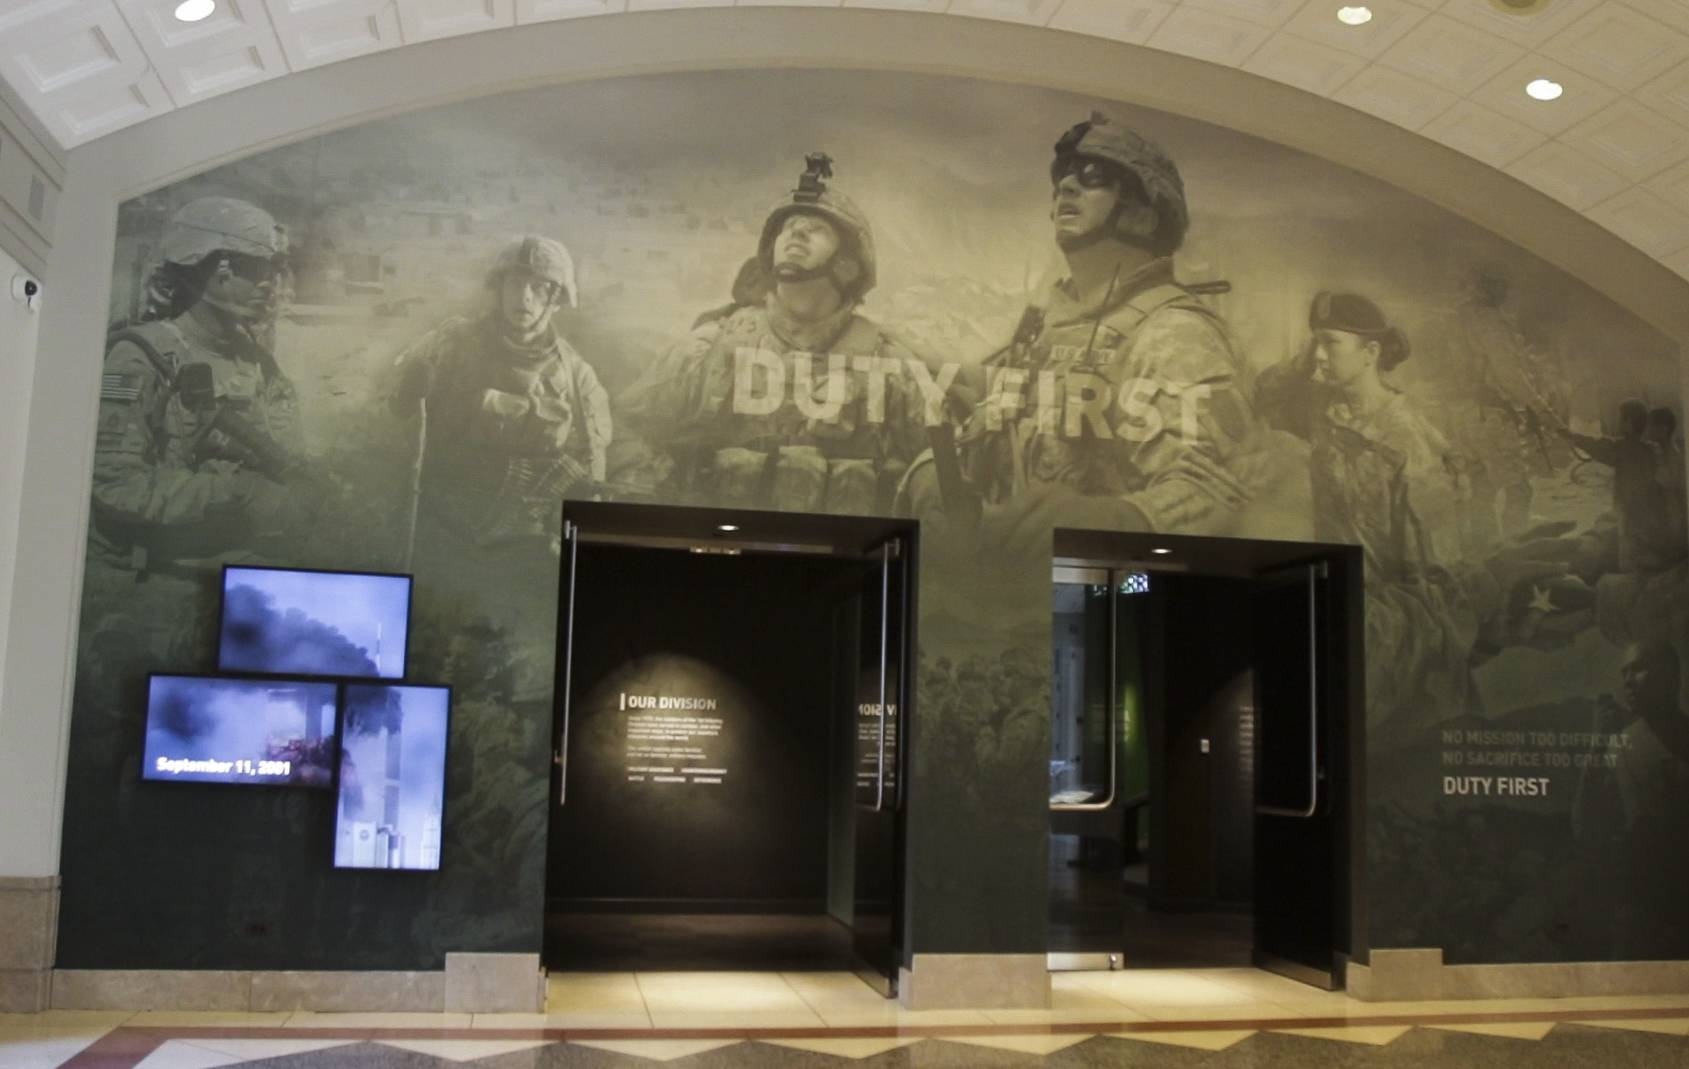 'Duty First' provides new look for revamped Cantigny museum